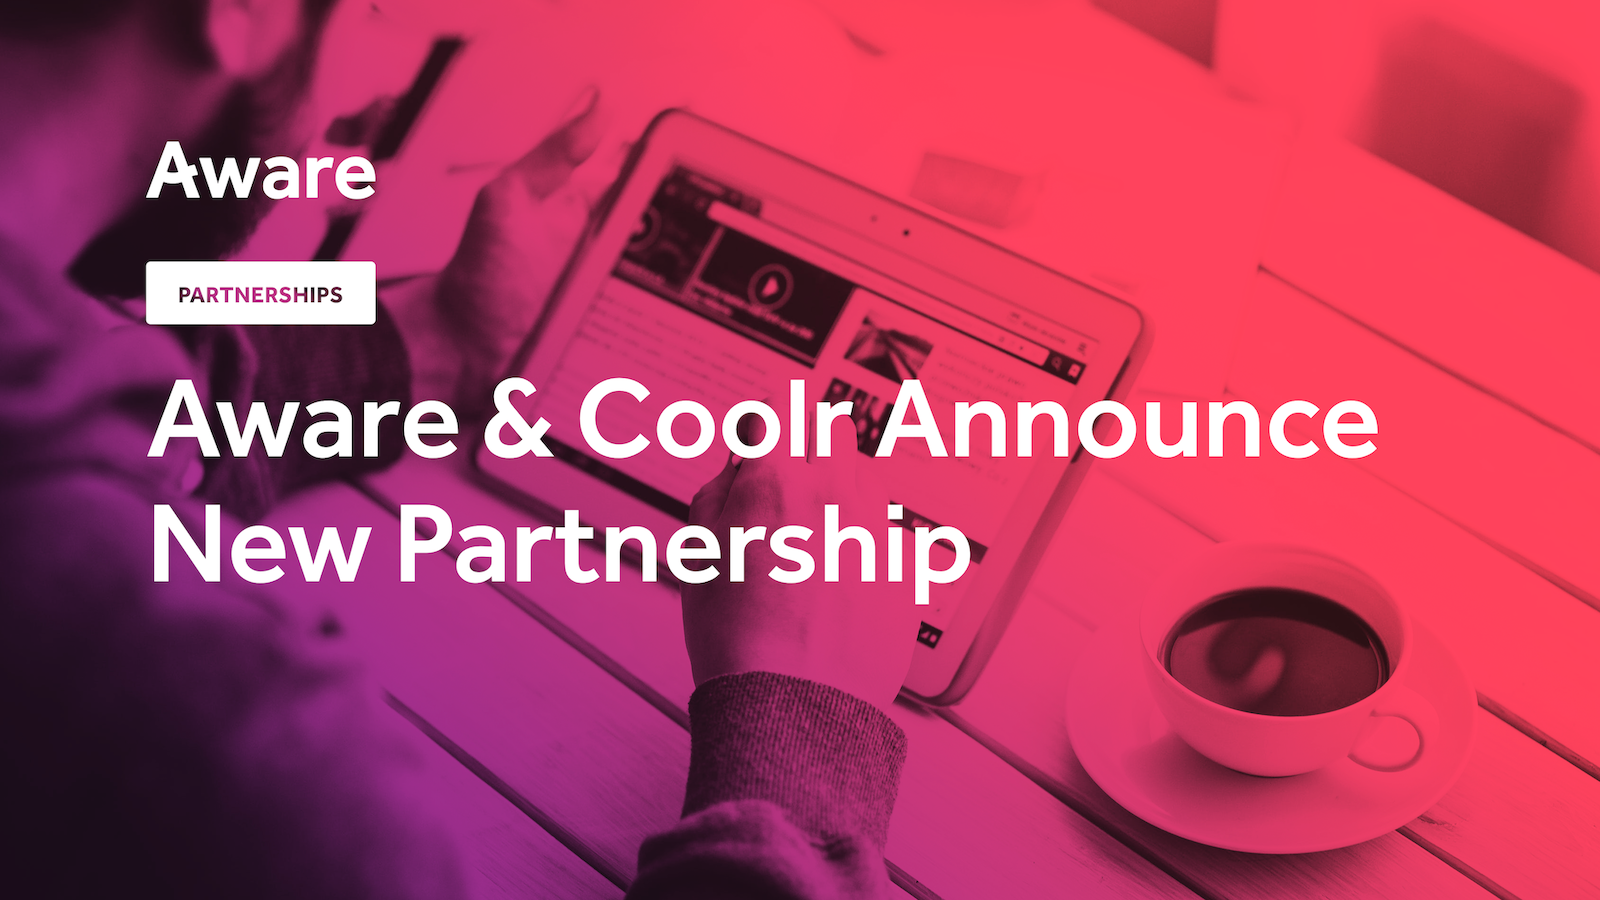 Aware & Coolr Announce New Partnership